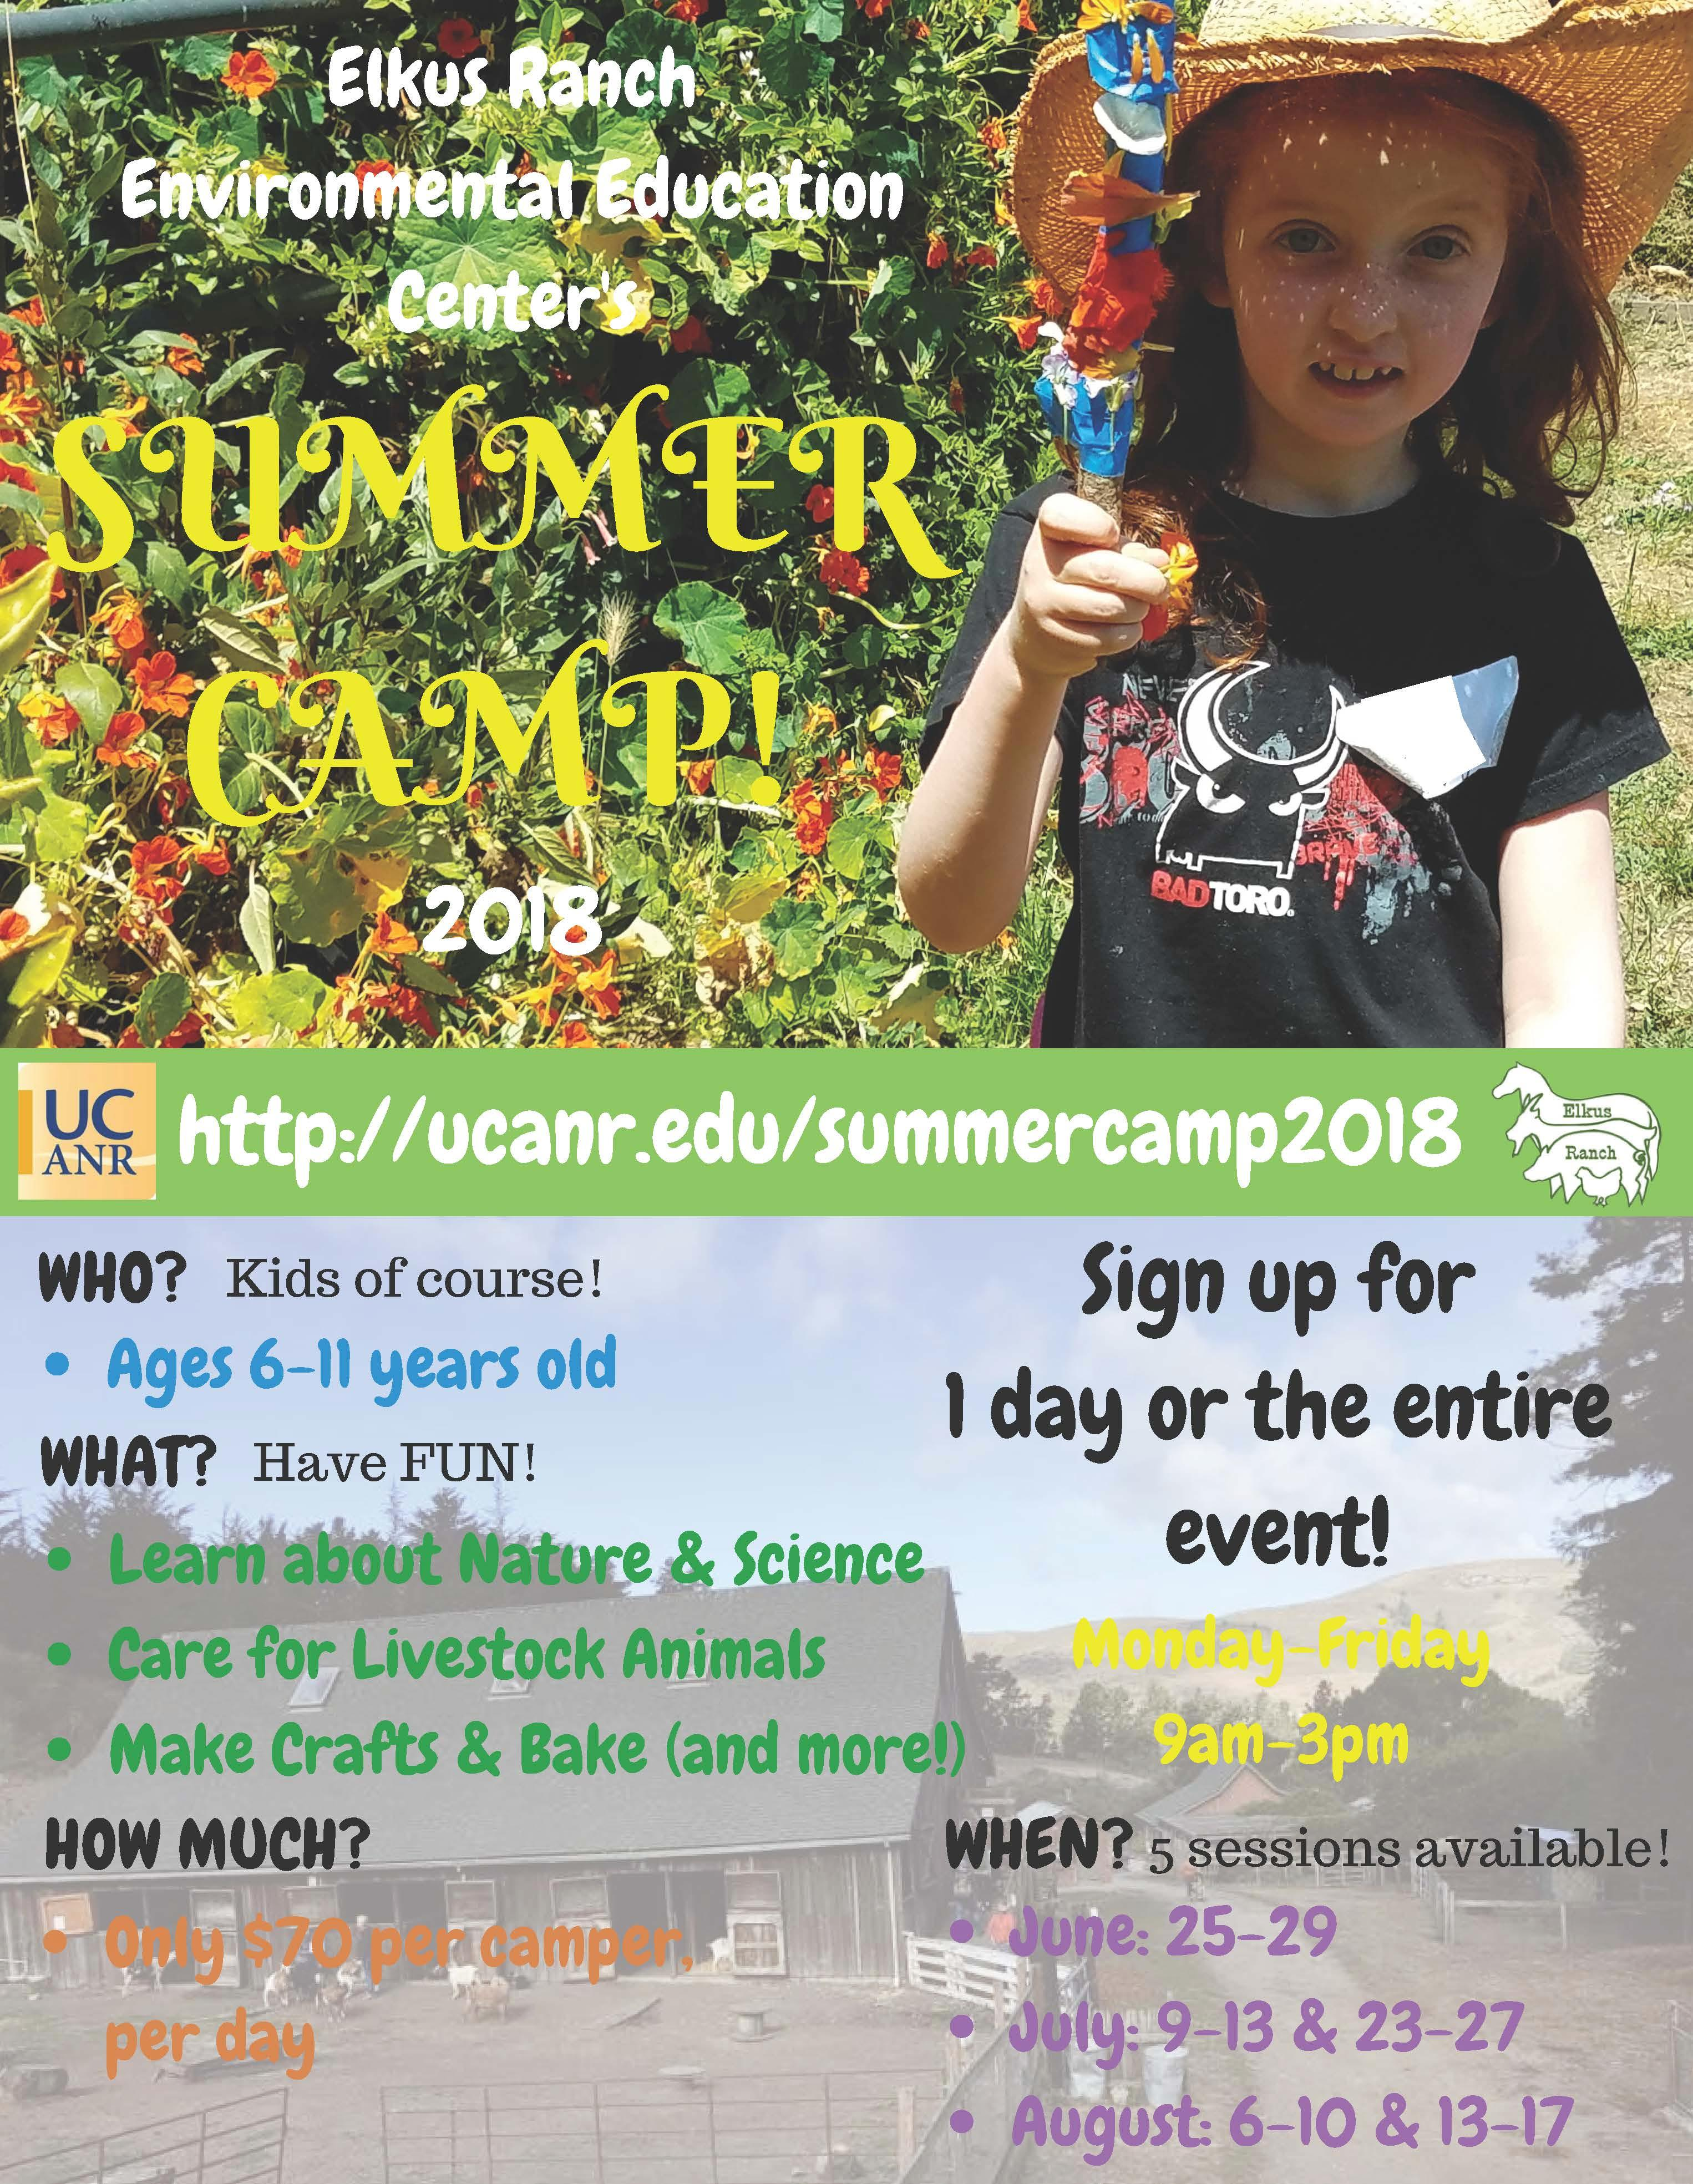 Elkus Ranch Environmental Education Center Summer Camp 2018! Young girl holds stick craft in the garden.